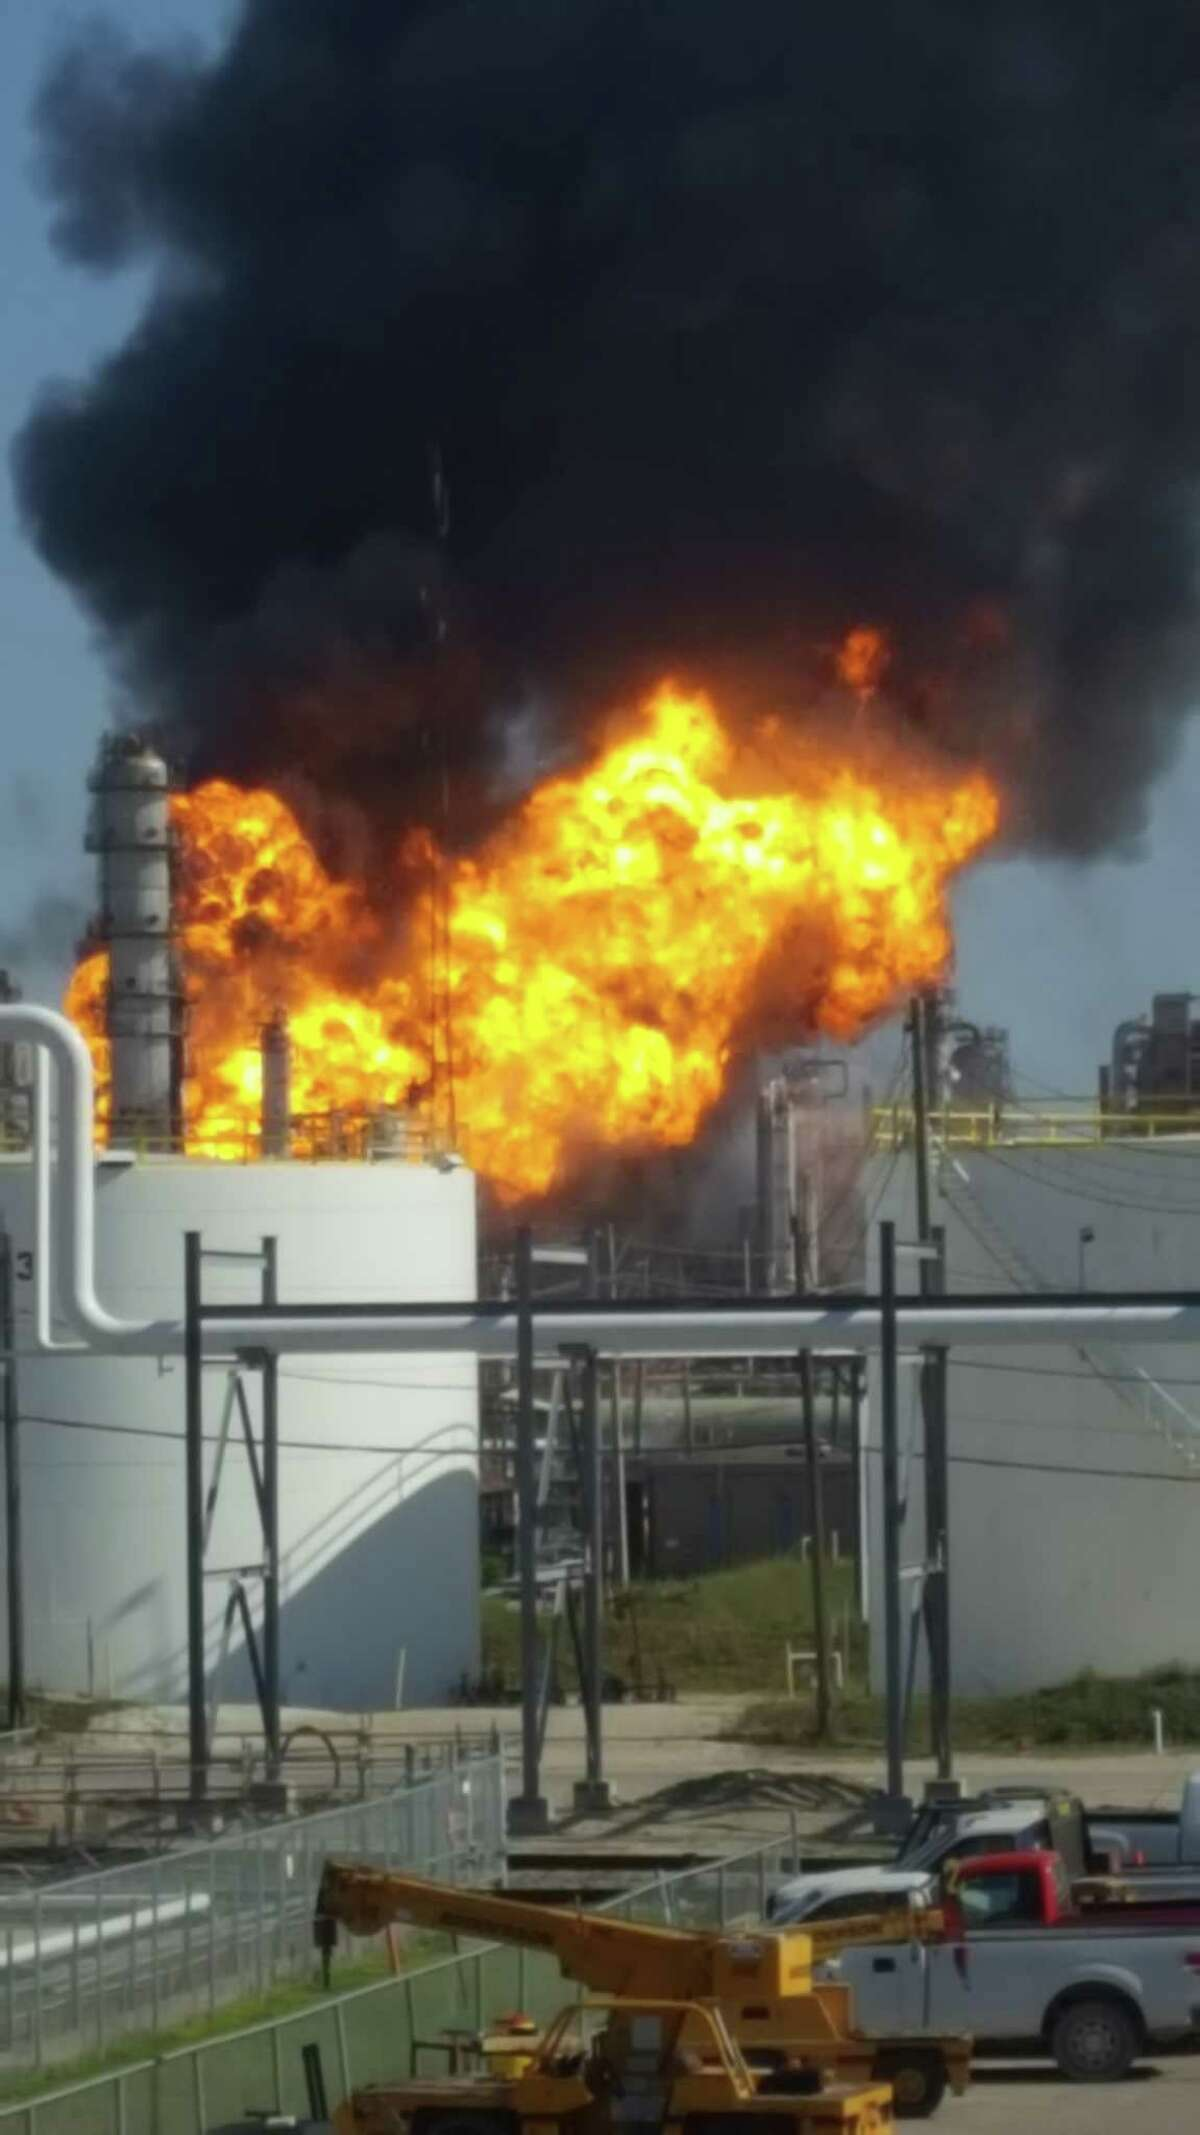 A group of 28 workers are suing San Antonio-based refiner Valero Energy Corp. for injuries they claim to have suffered in an April 19 refinery explosion.